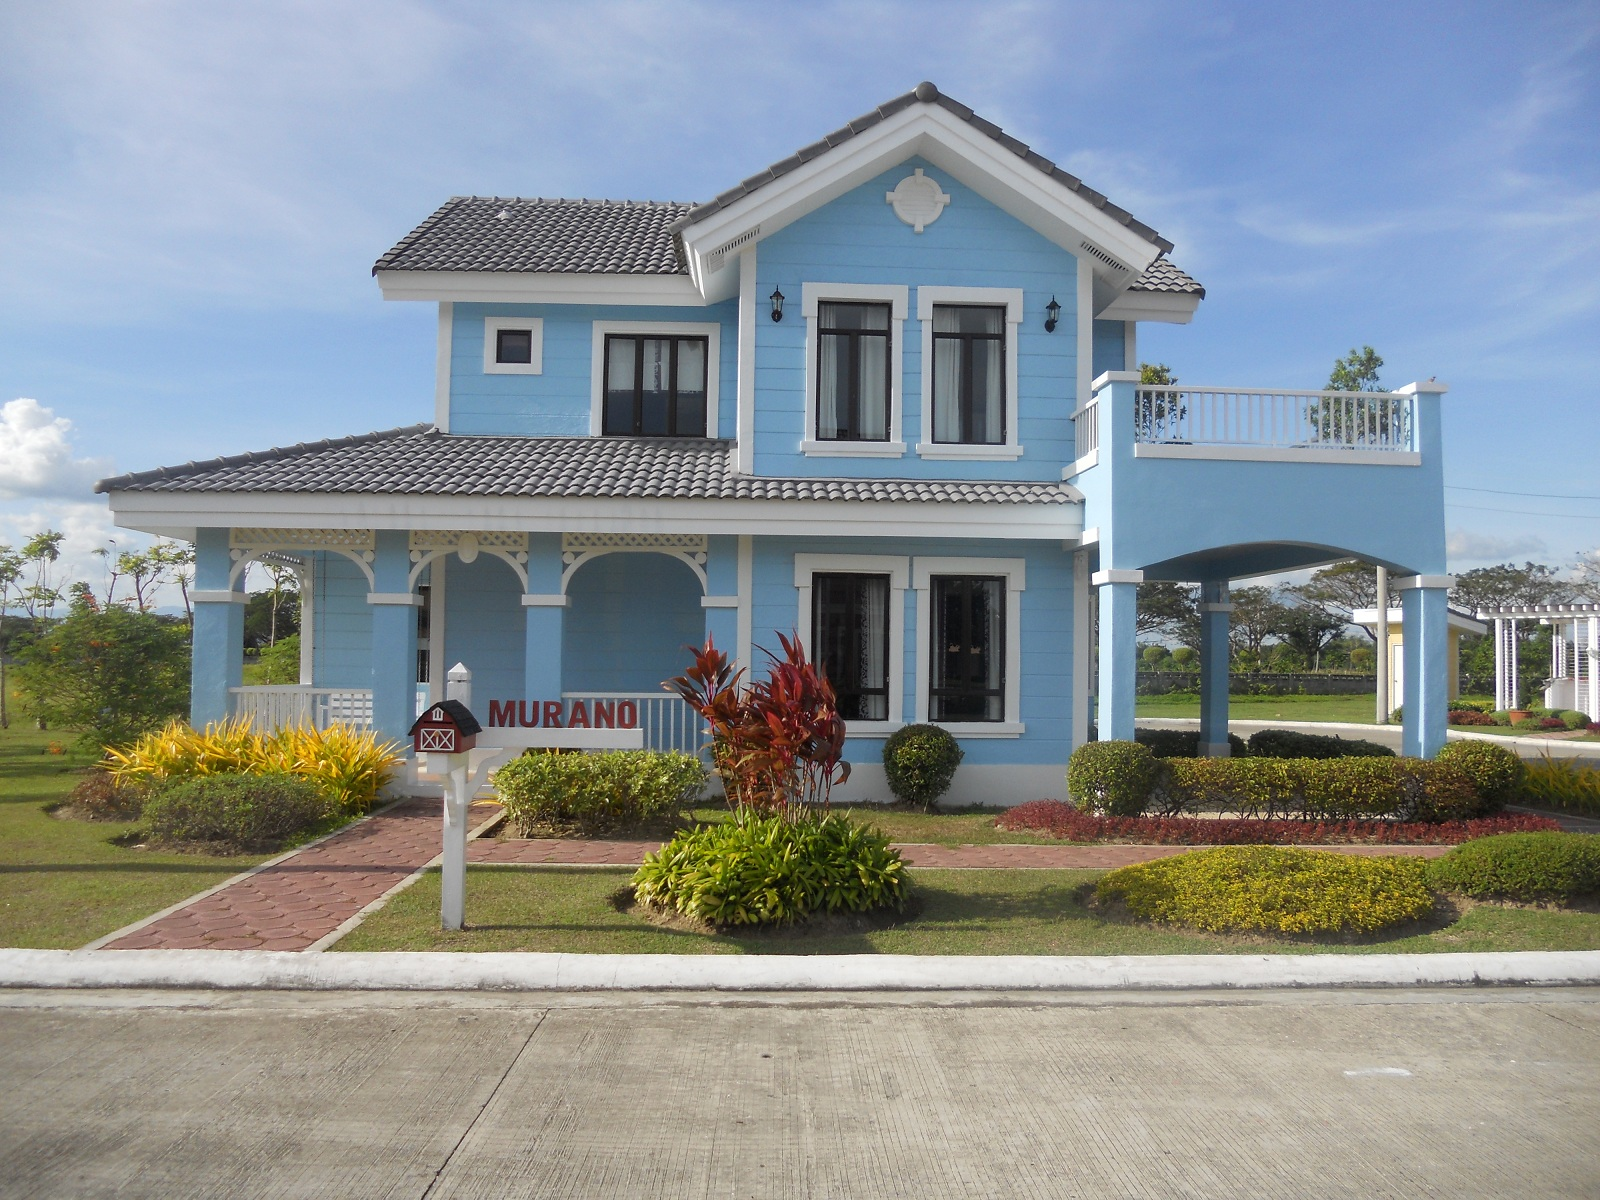 Savannah crest iloilo within savannah iloilo by camella for House models in the philippines